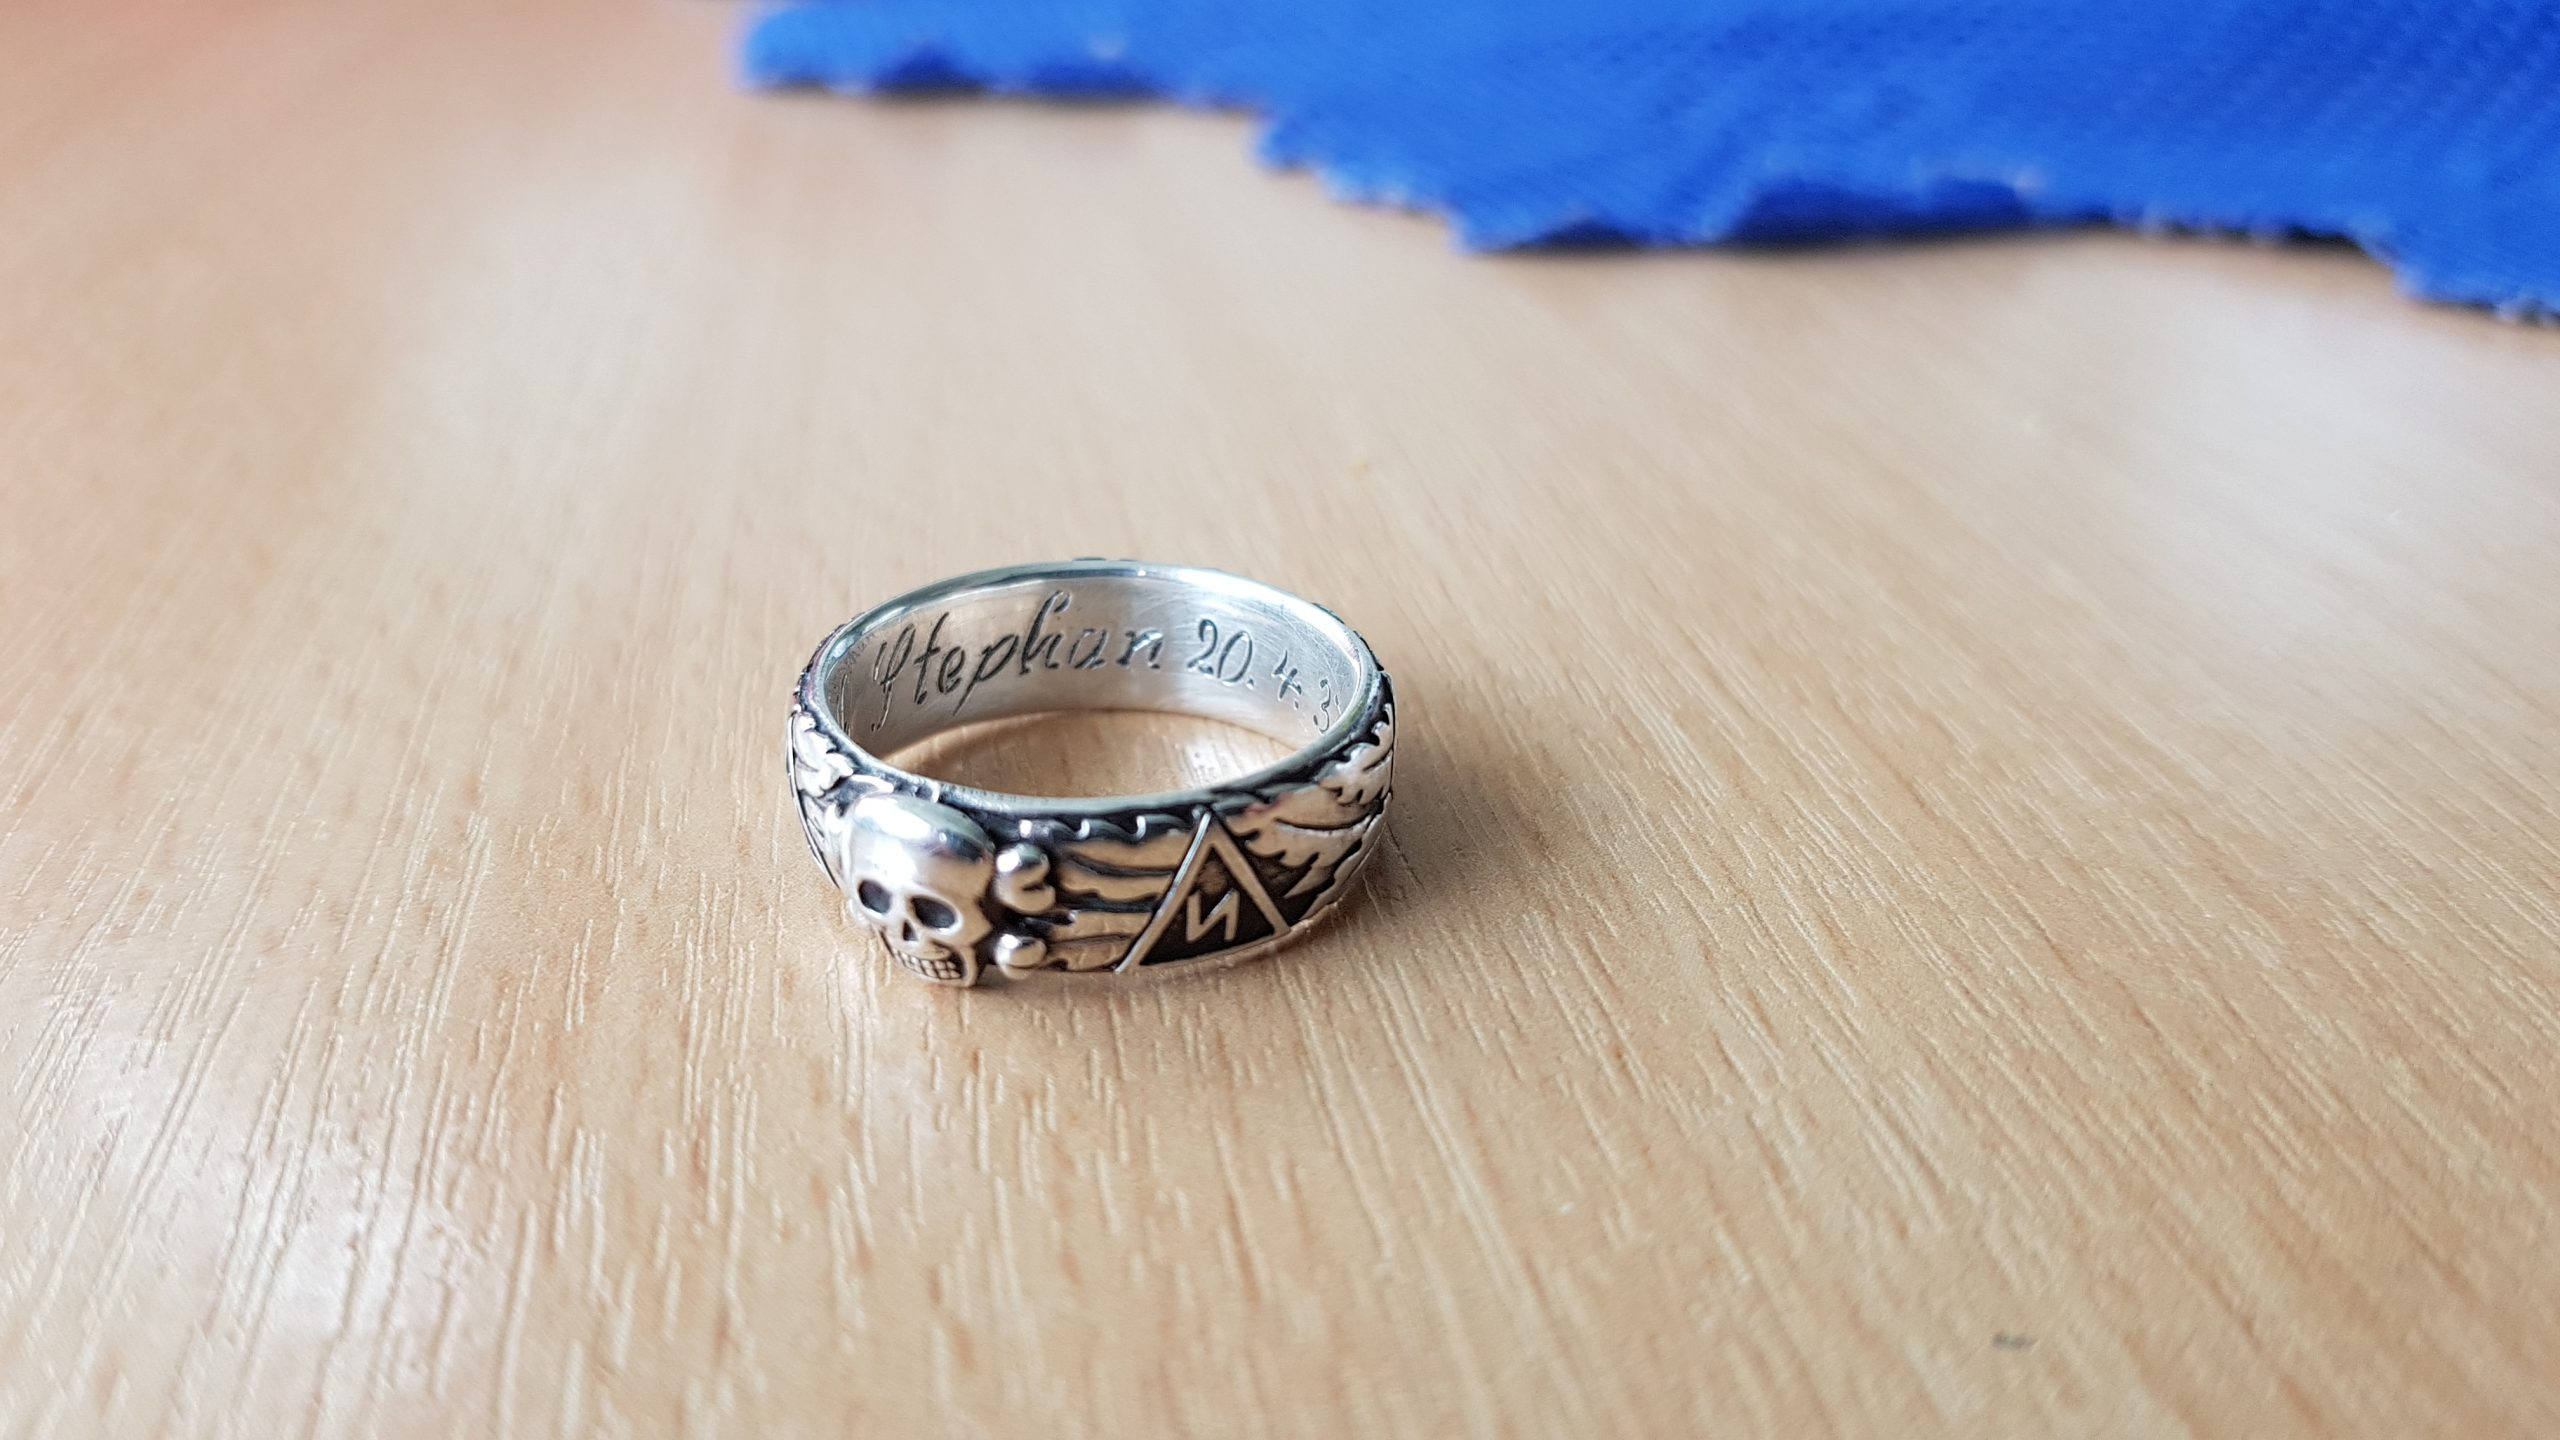 Ehrenring - Ss Honor Ring Repro